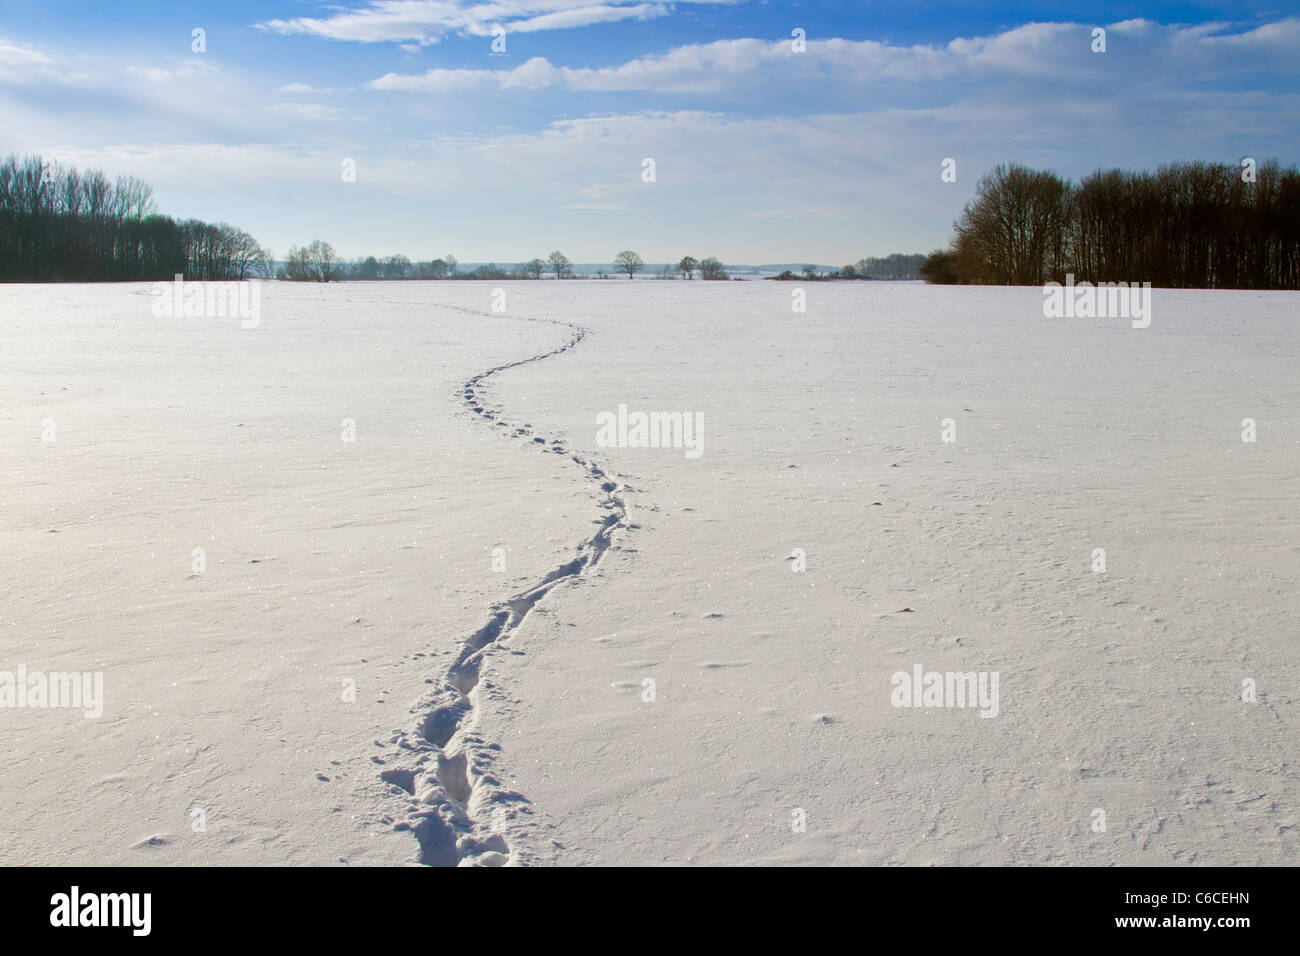 Wild boar (Sus scrofa) track running zigzag through field in the snow in winter, Germany Stock Photo